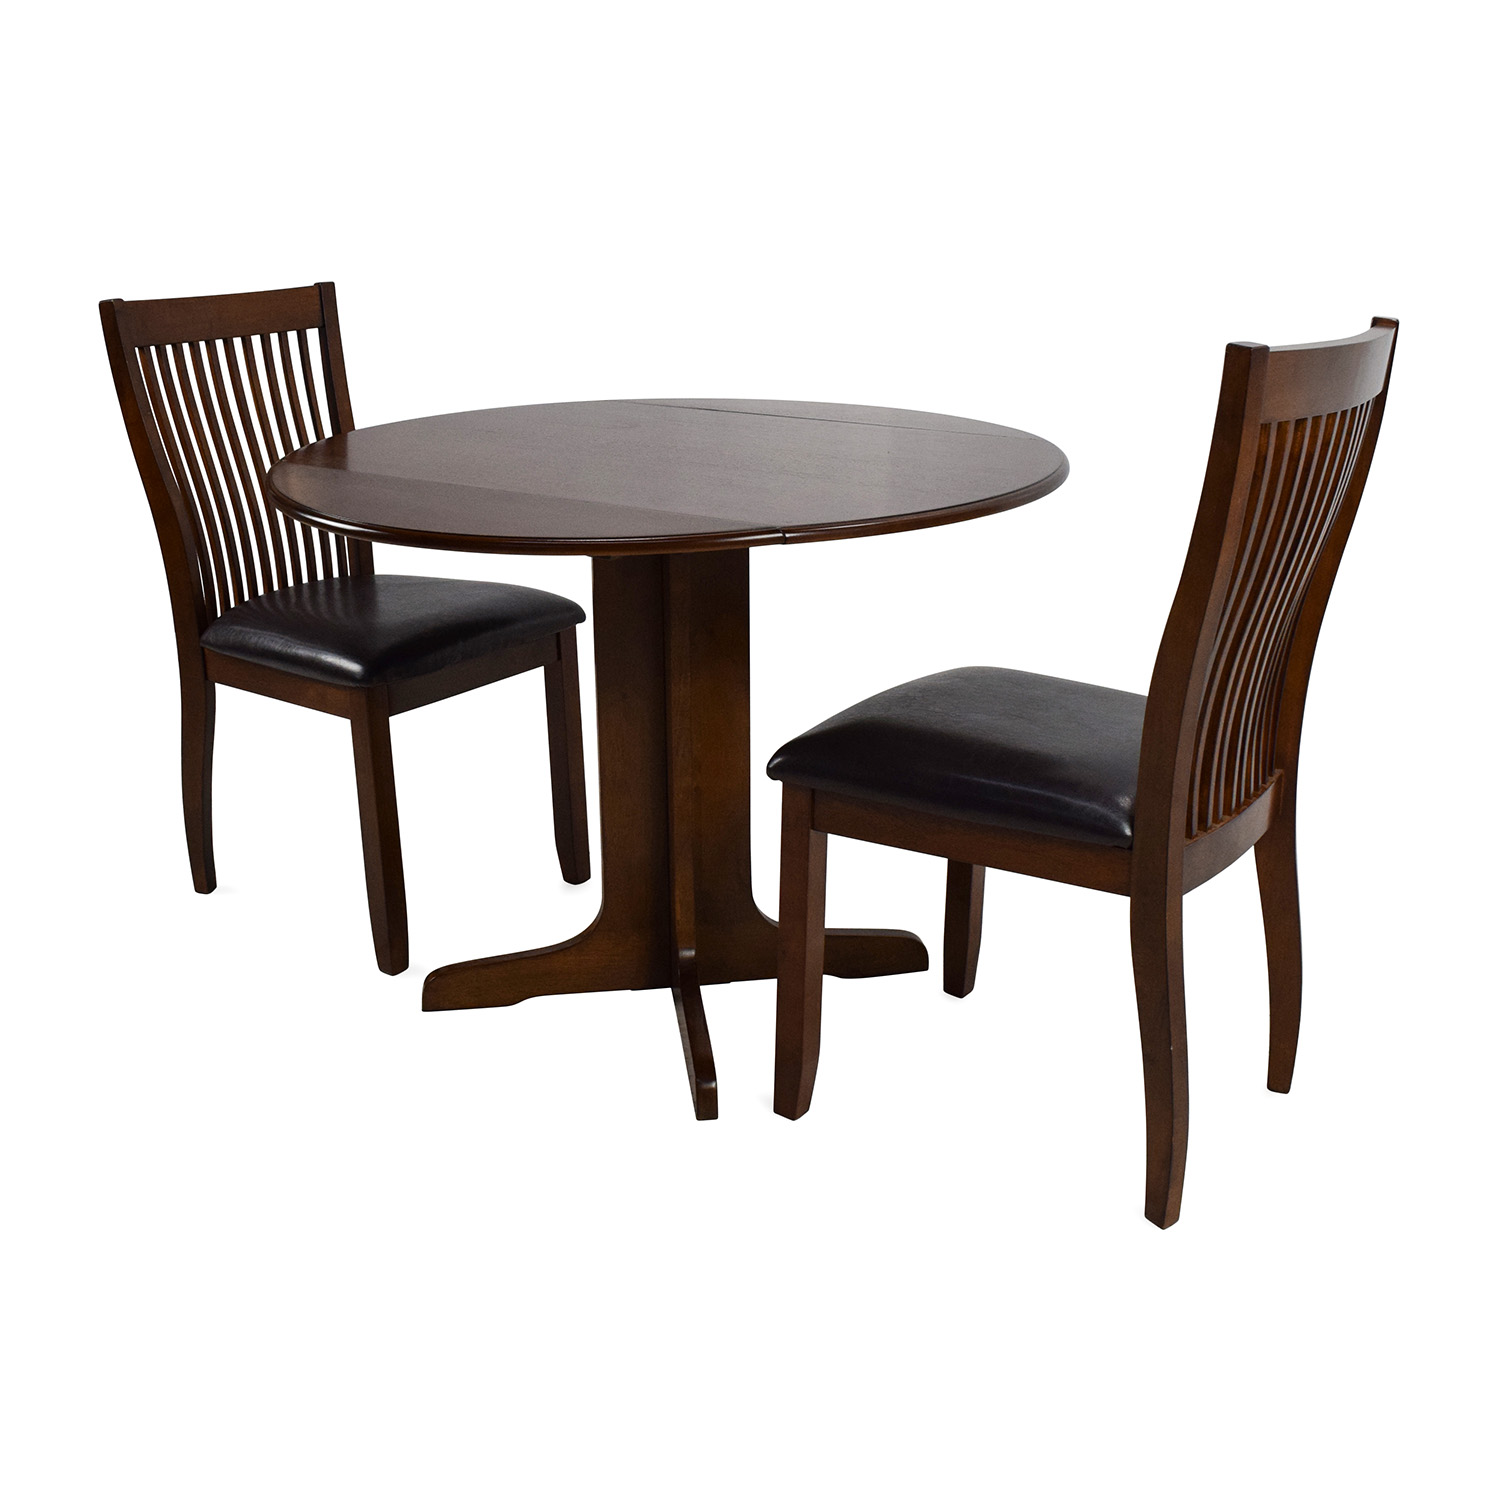 71 OFF  Ashley Furniture Ashley Furniture Compact Dining